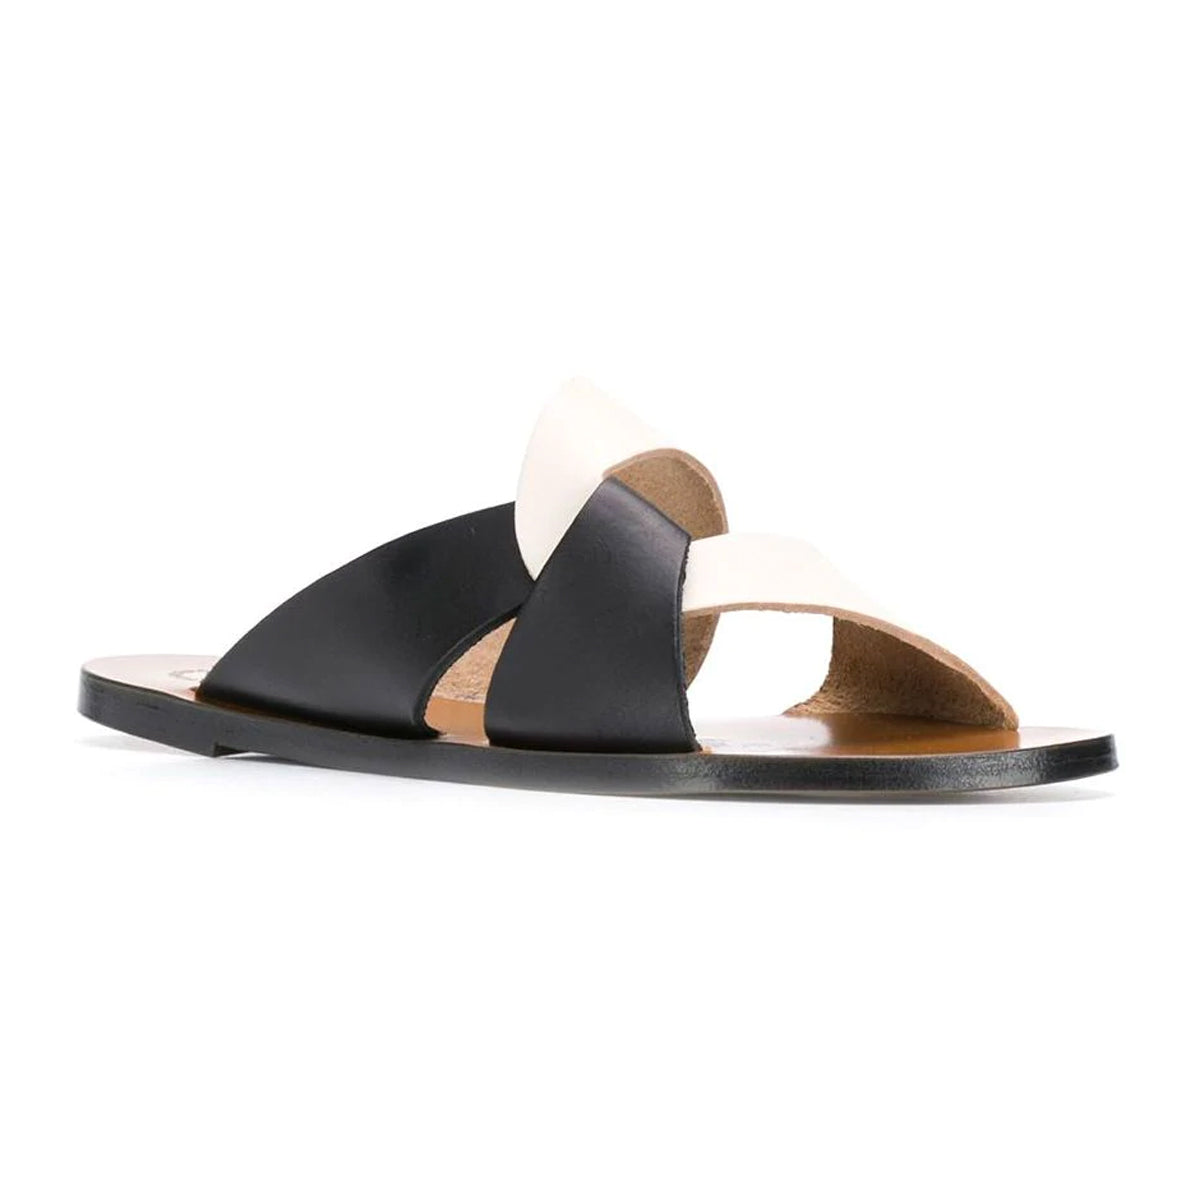 Allai cross over leather slides